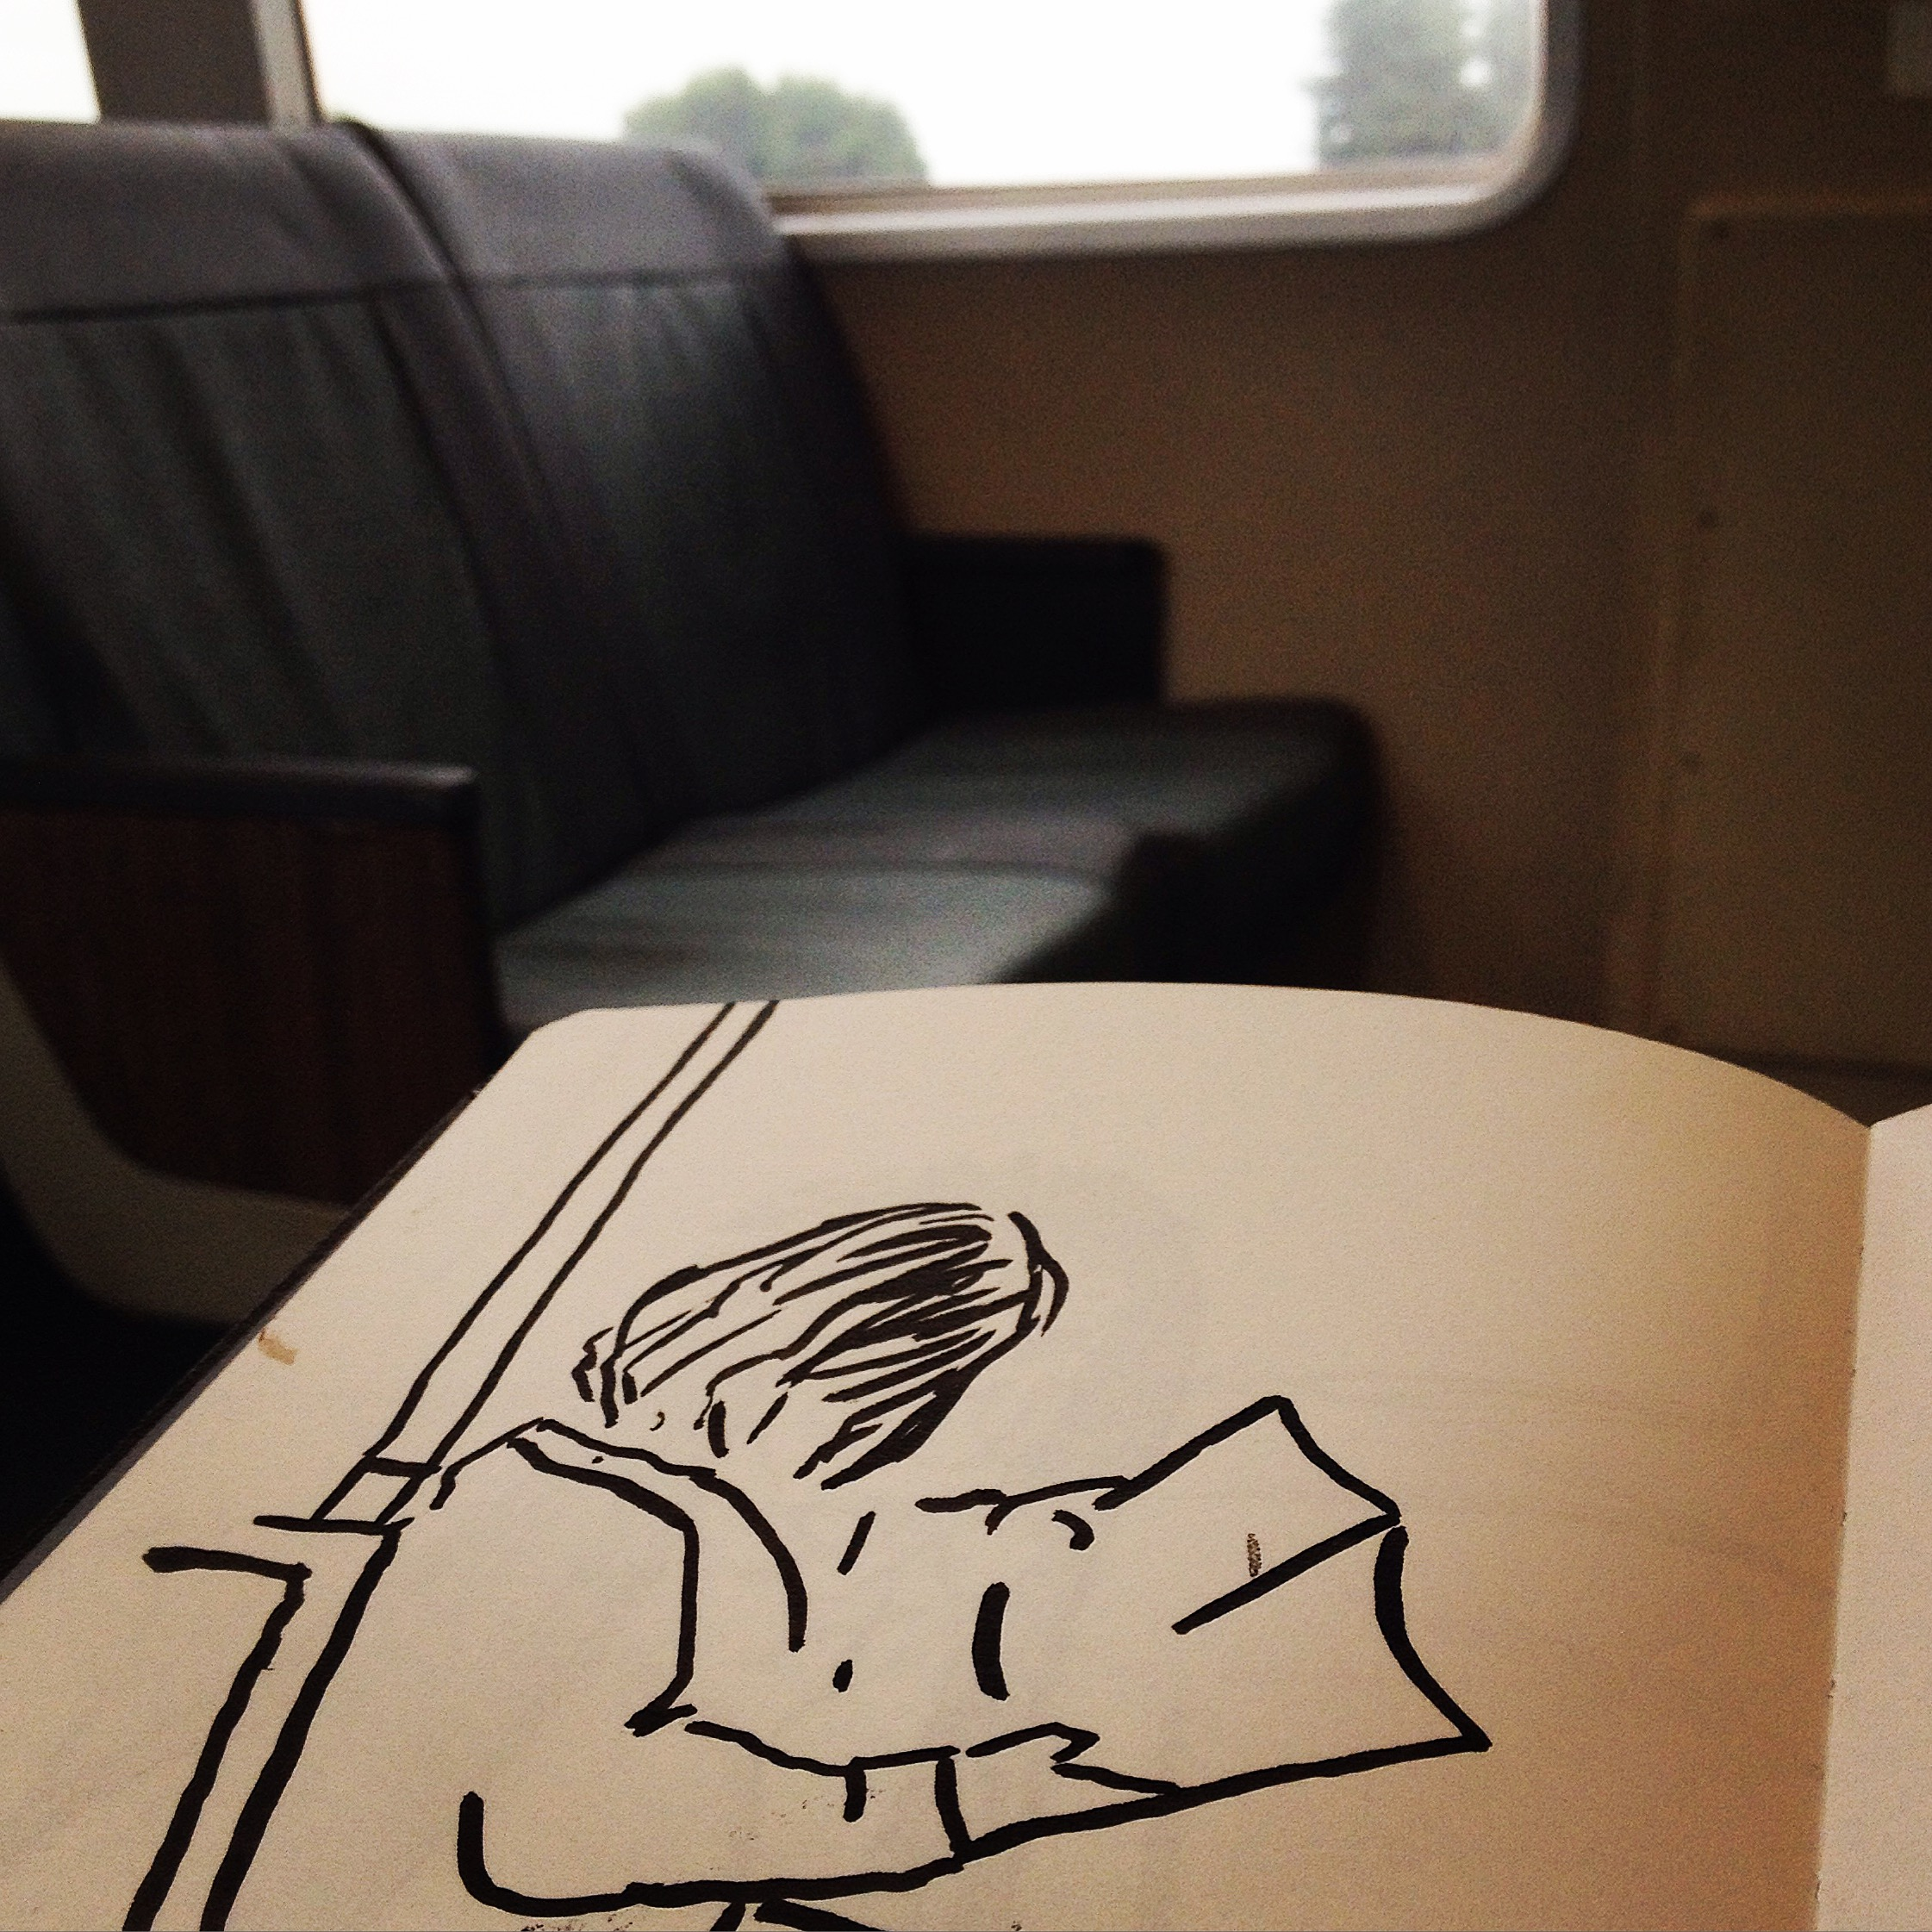 Commuter sketching